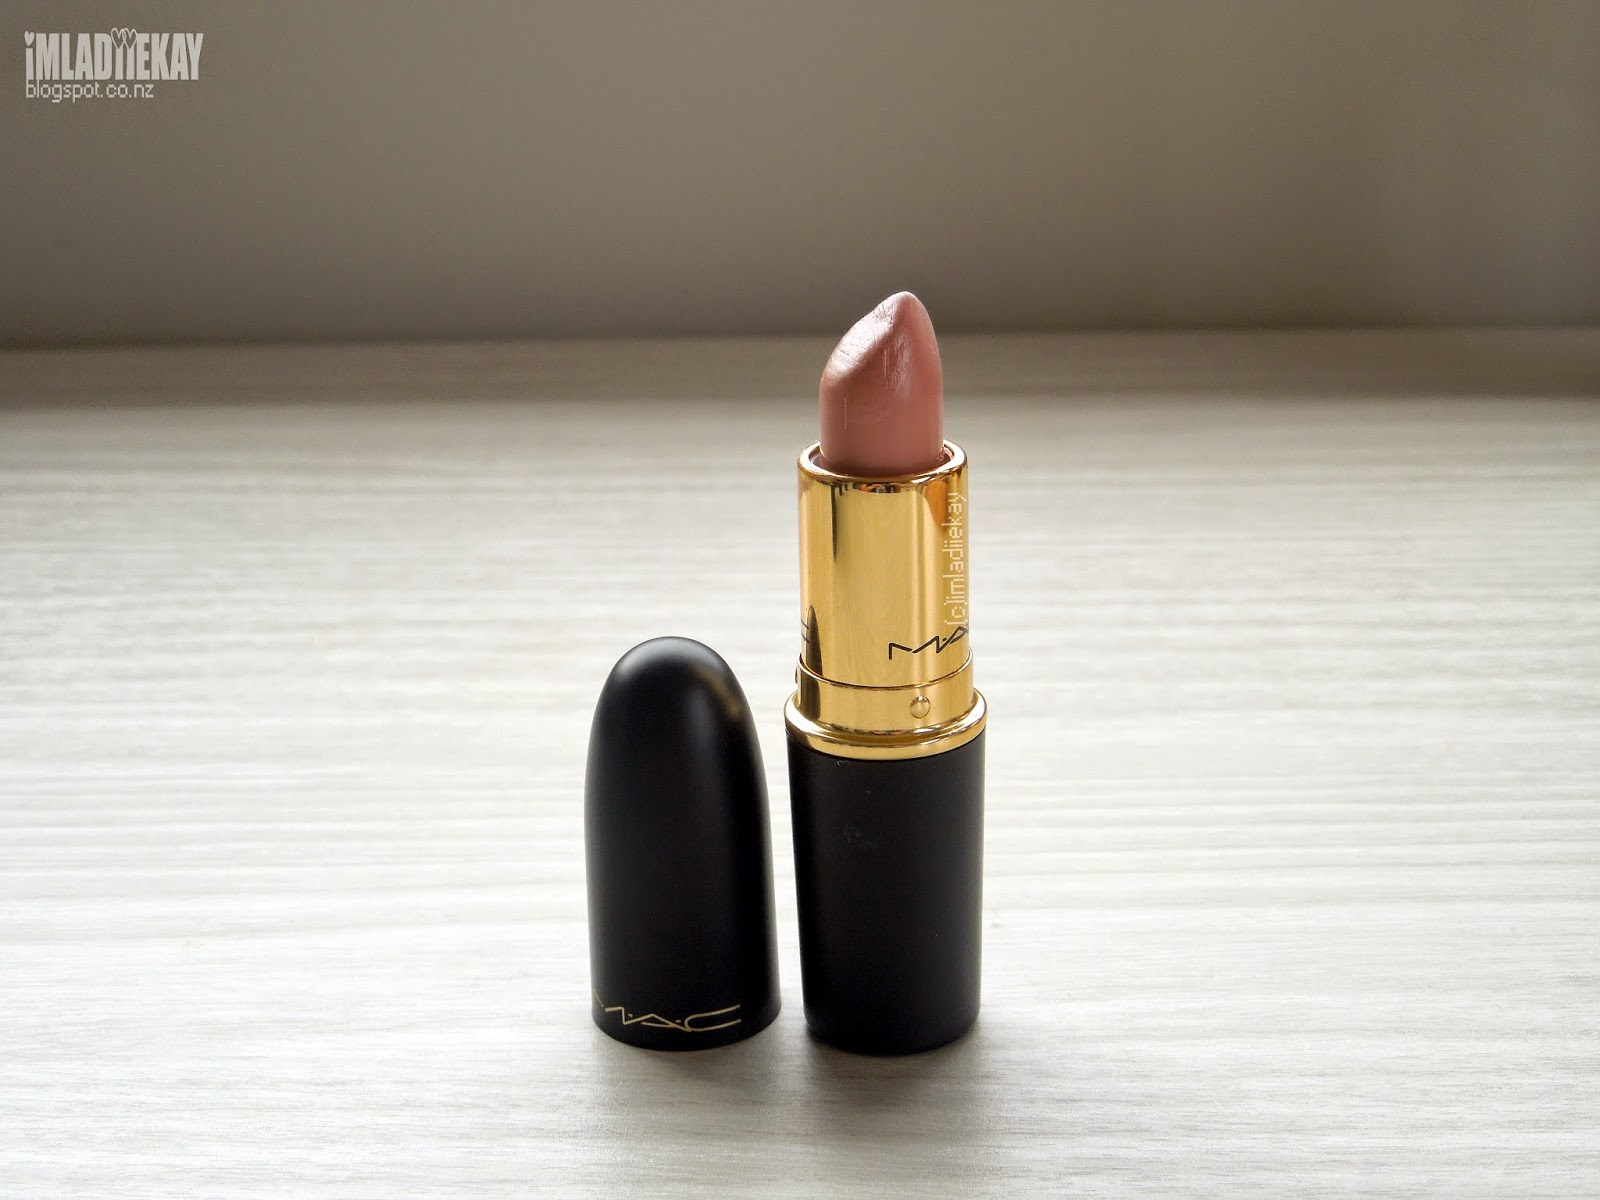 mac divine night lipstick flair for finery